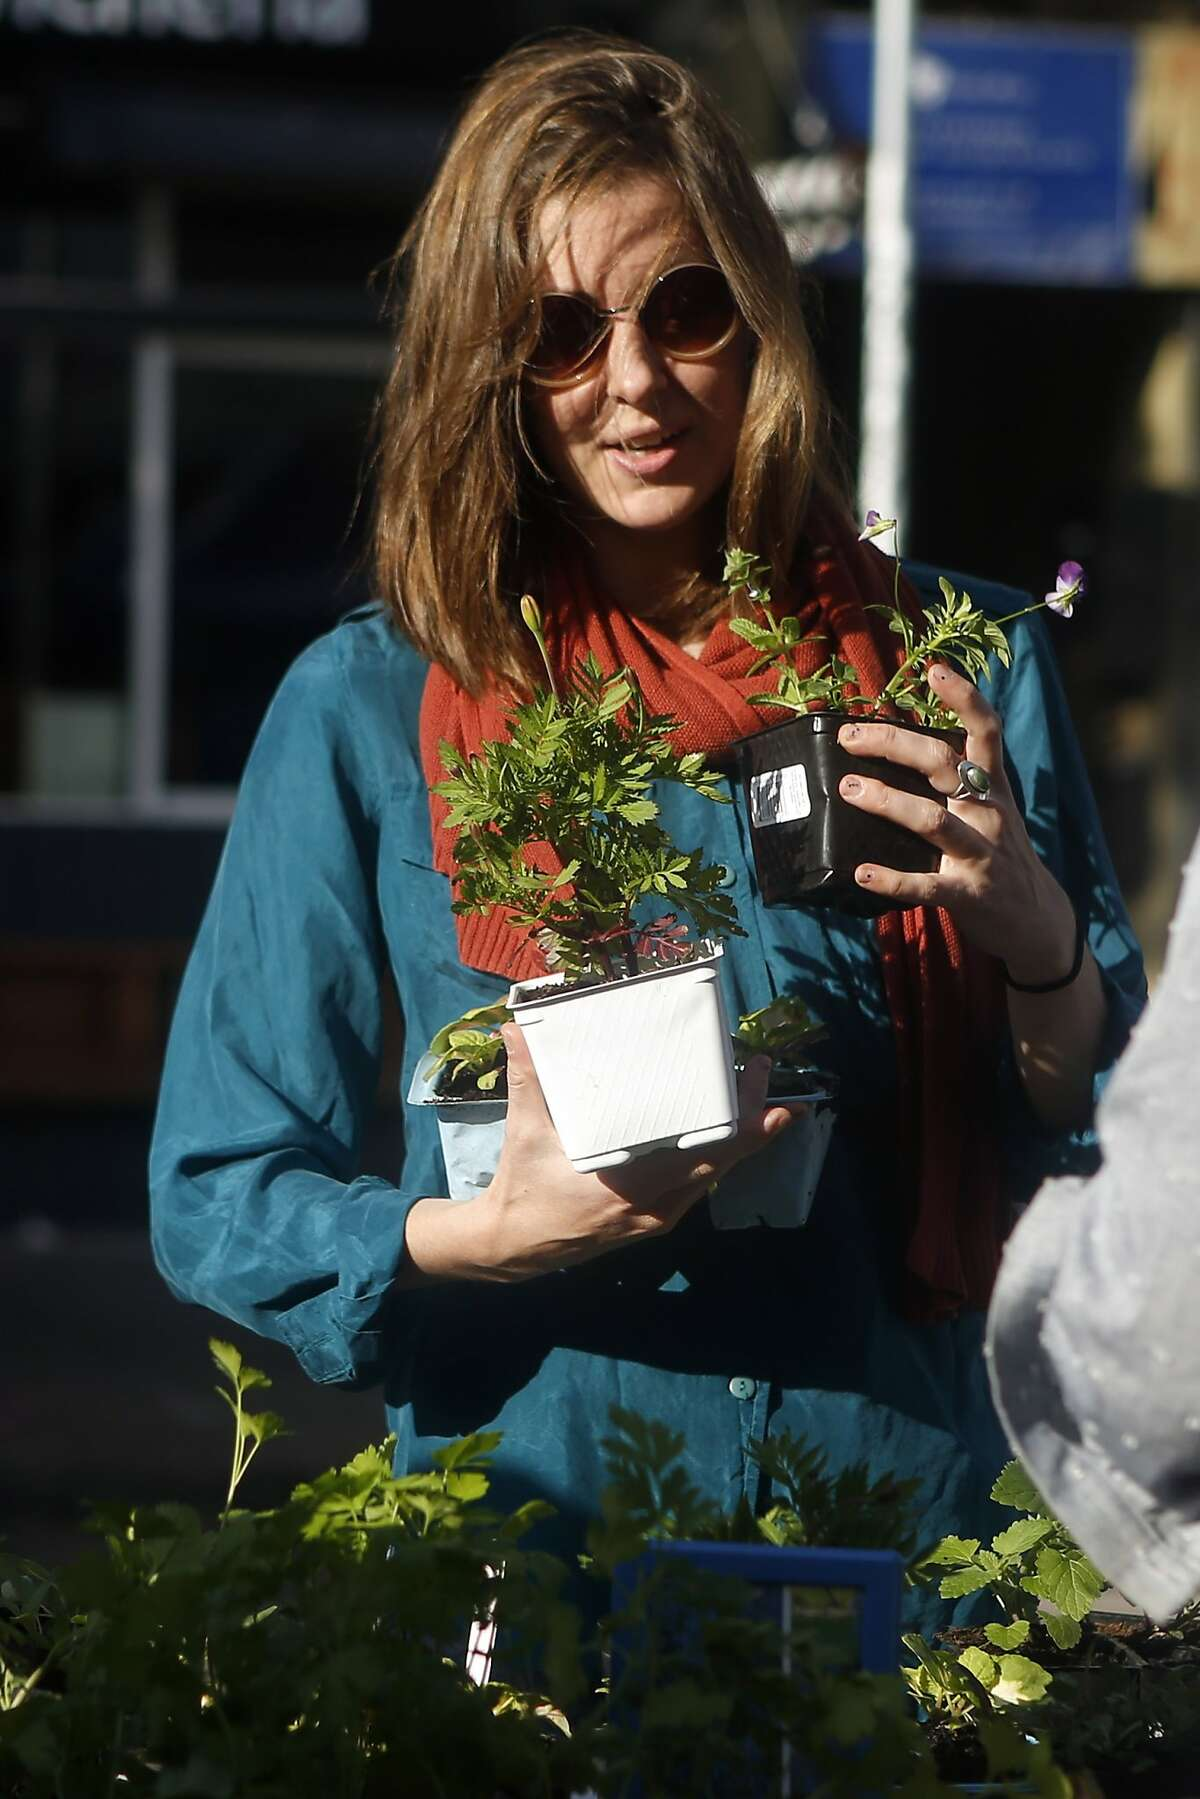 Jennifer Kindell buys plants from the Urban Sprouts program at a farmer's market on 22nd Street in San Francisco, Calif. on Thursday, October 9, 2014.